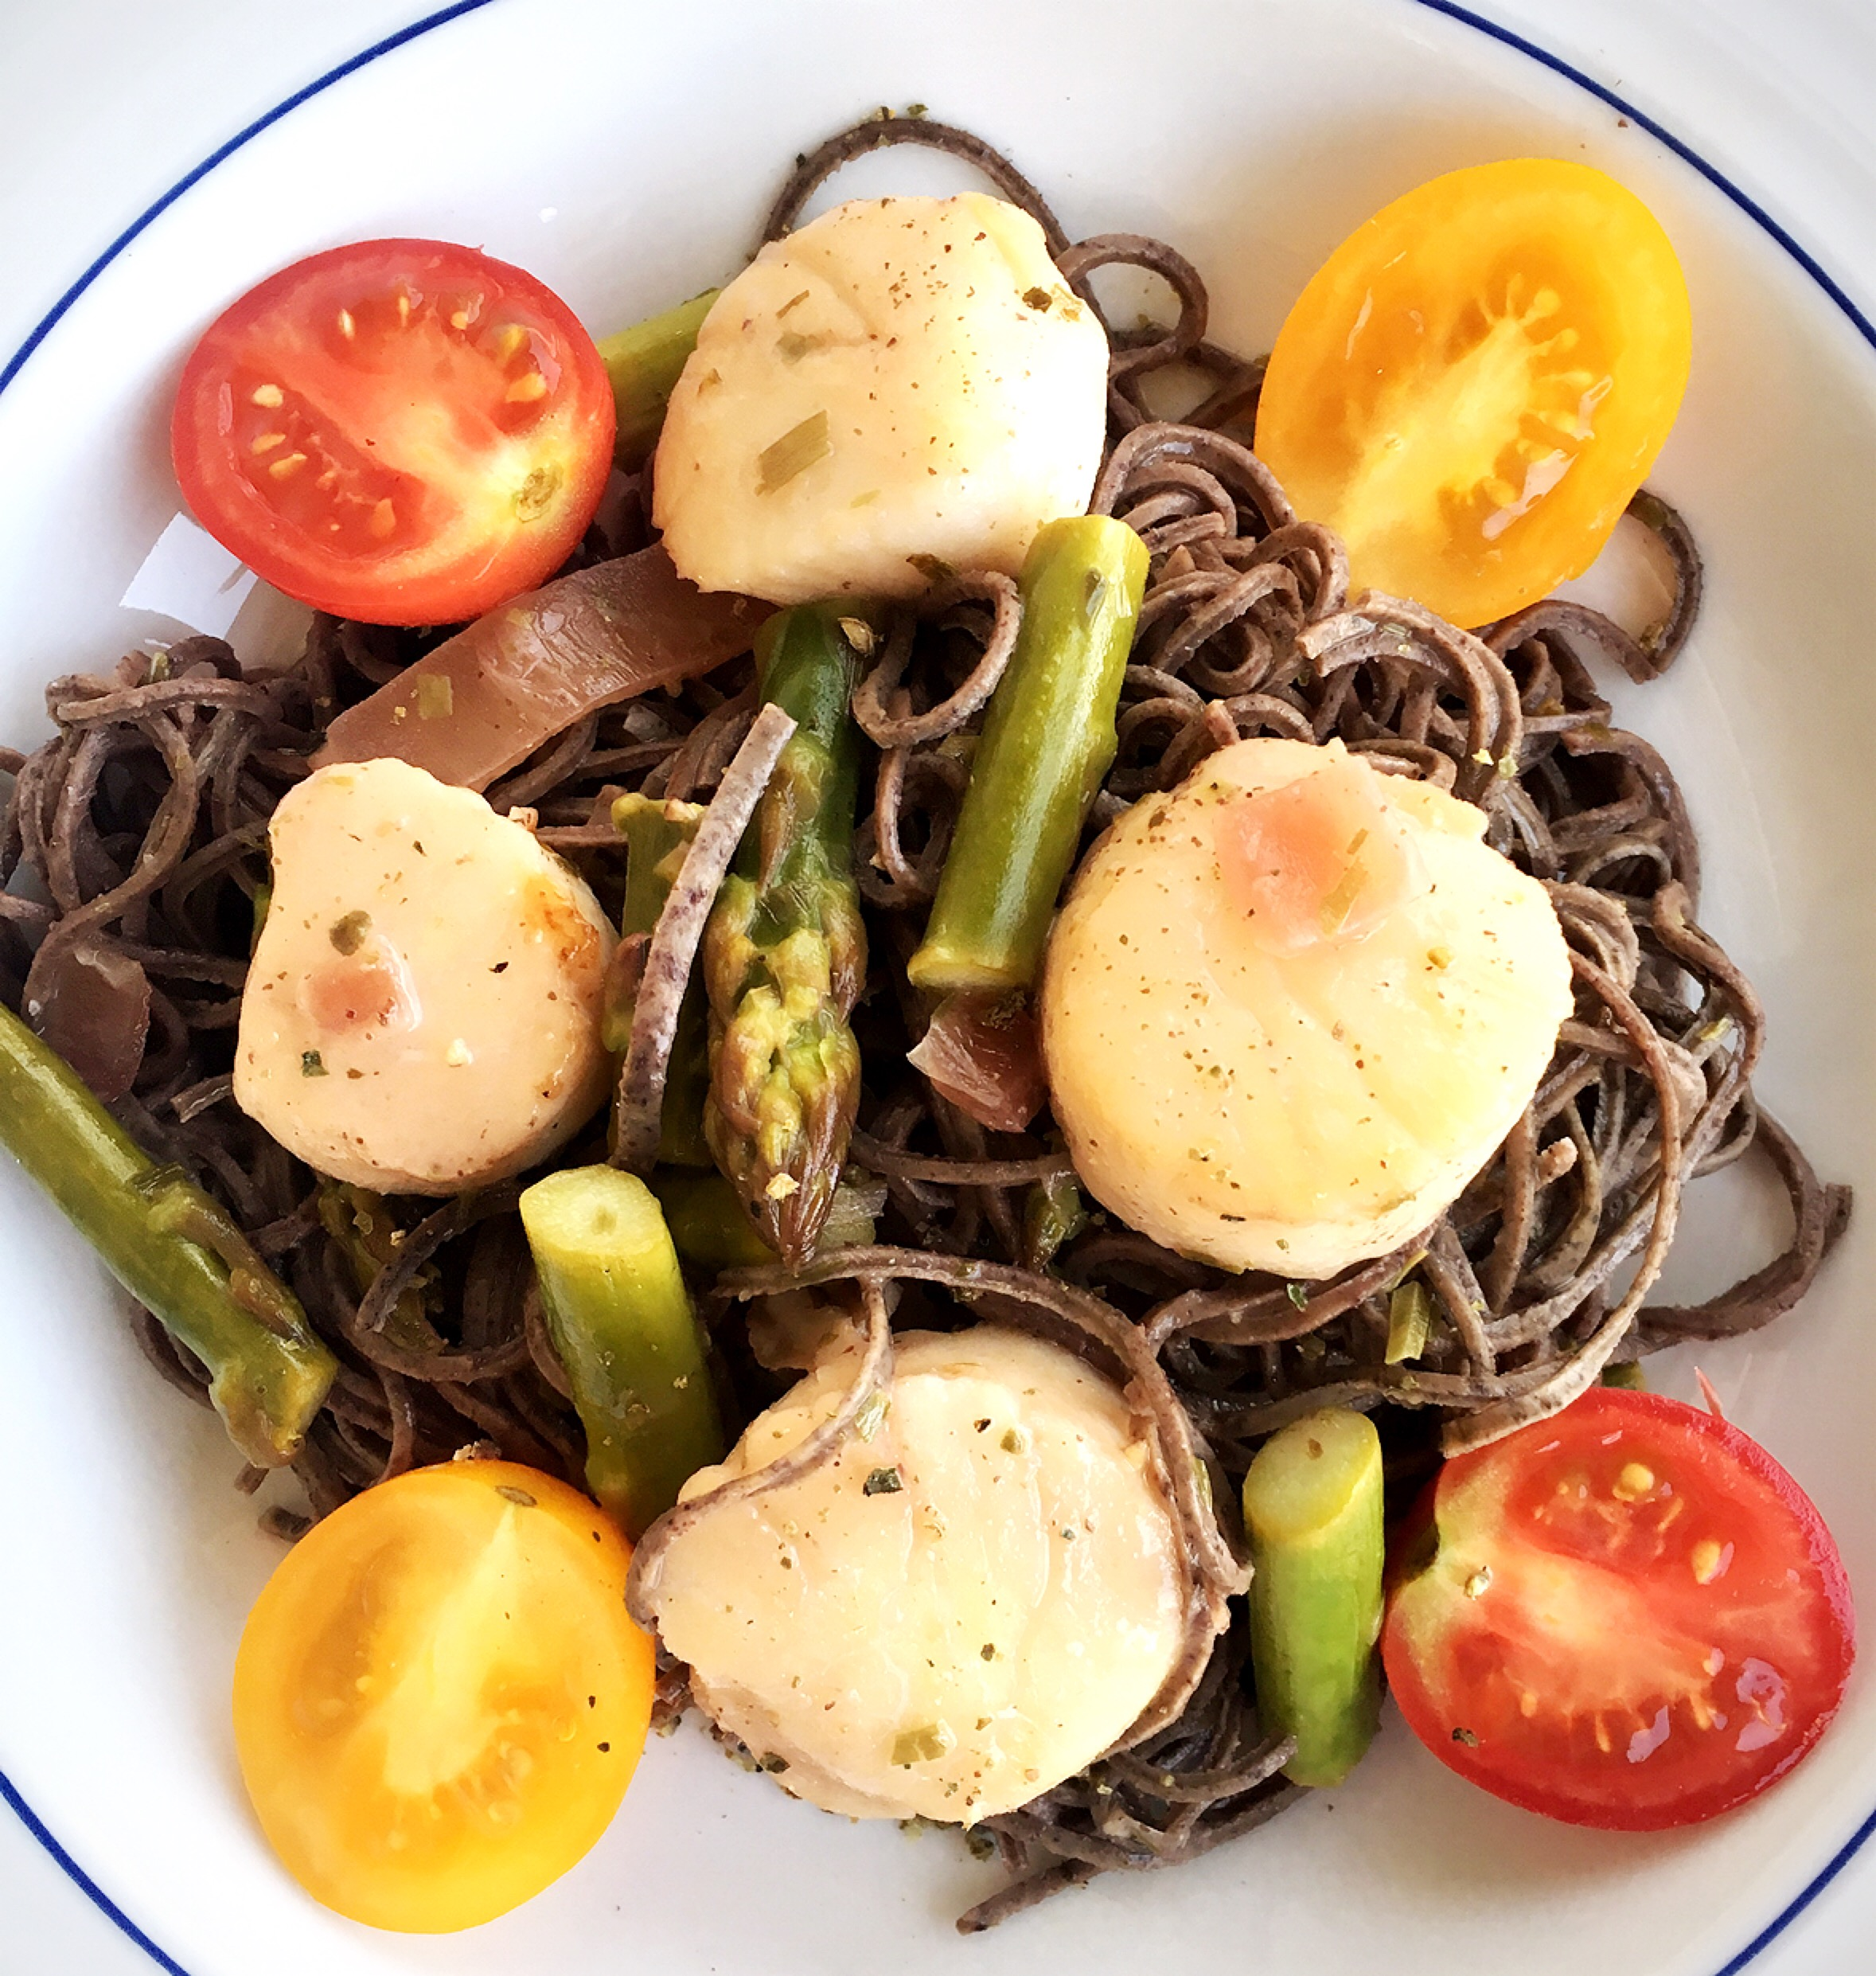 Sea scallops in tarragon ros wine sauce with pasta recipe this sea sacllop in wine sacue recipe only sounds fancy you can have this dinner forumfinder Gallery